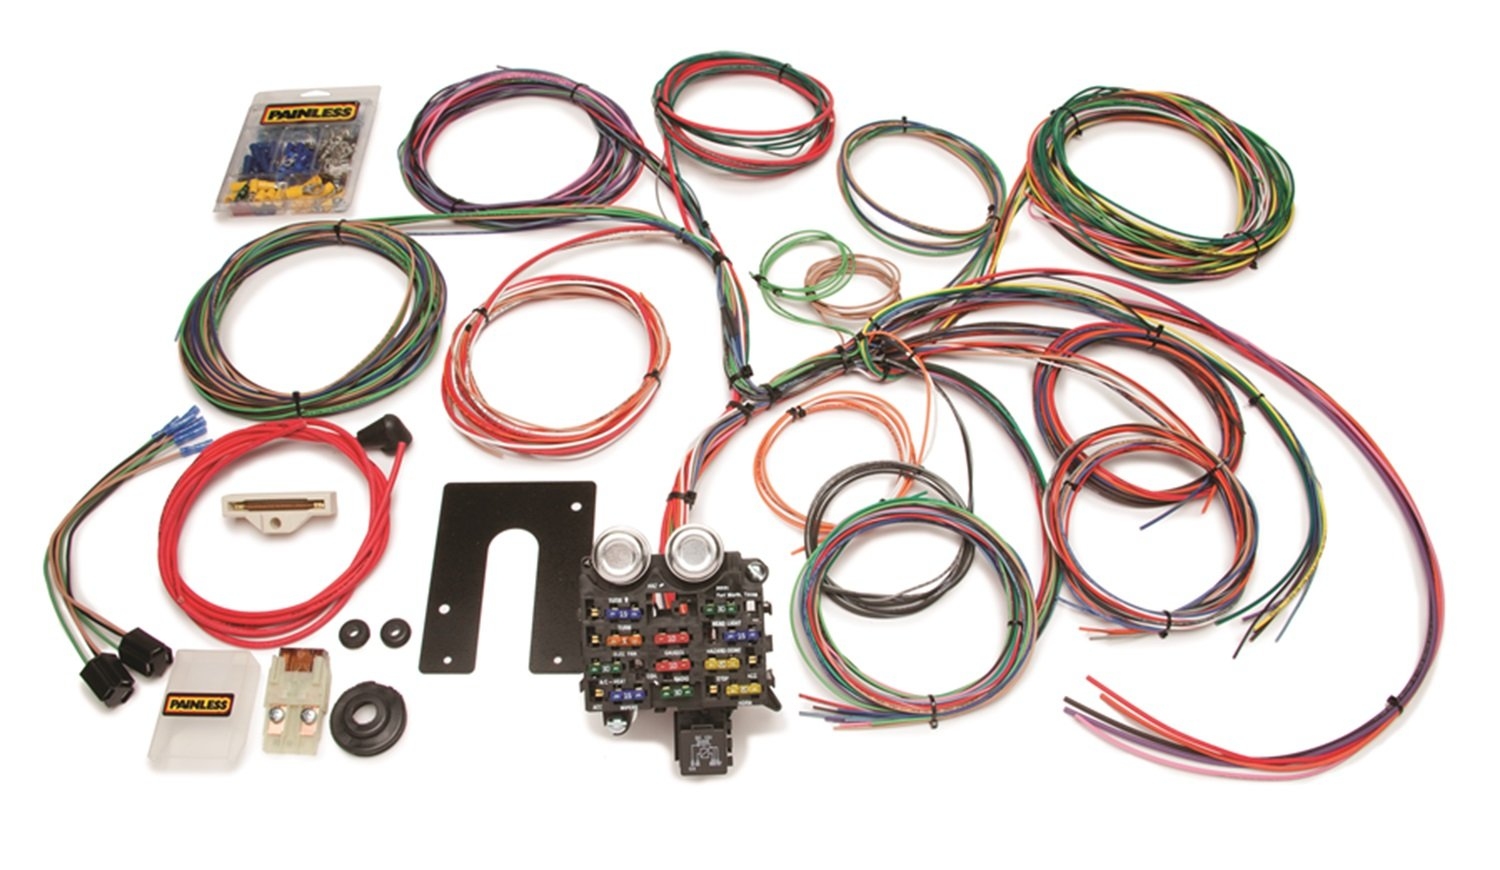 71y4s8BuPyL._SL1500_ amazon com painless wire 10105 wiring harness with firewall painless wiring harness at fashall.co